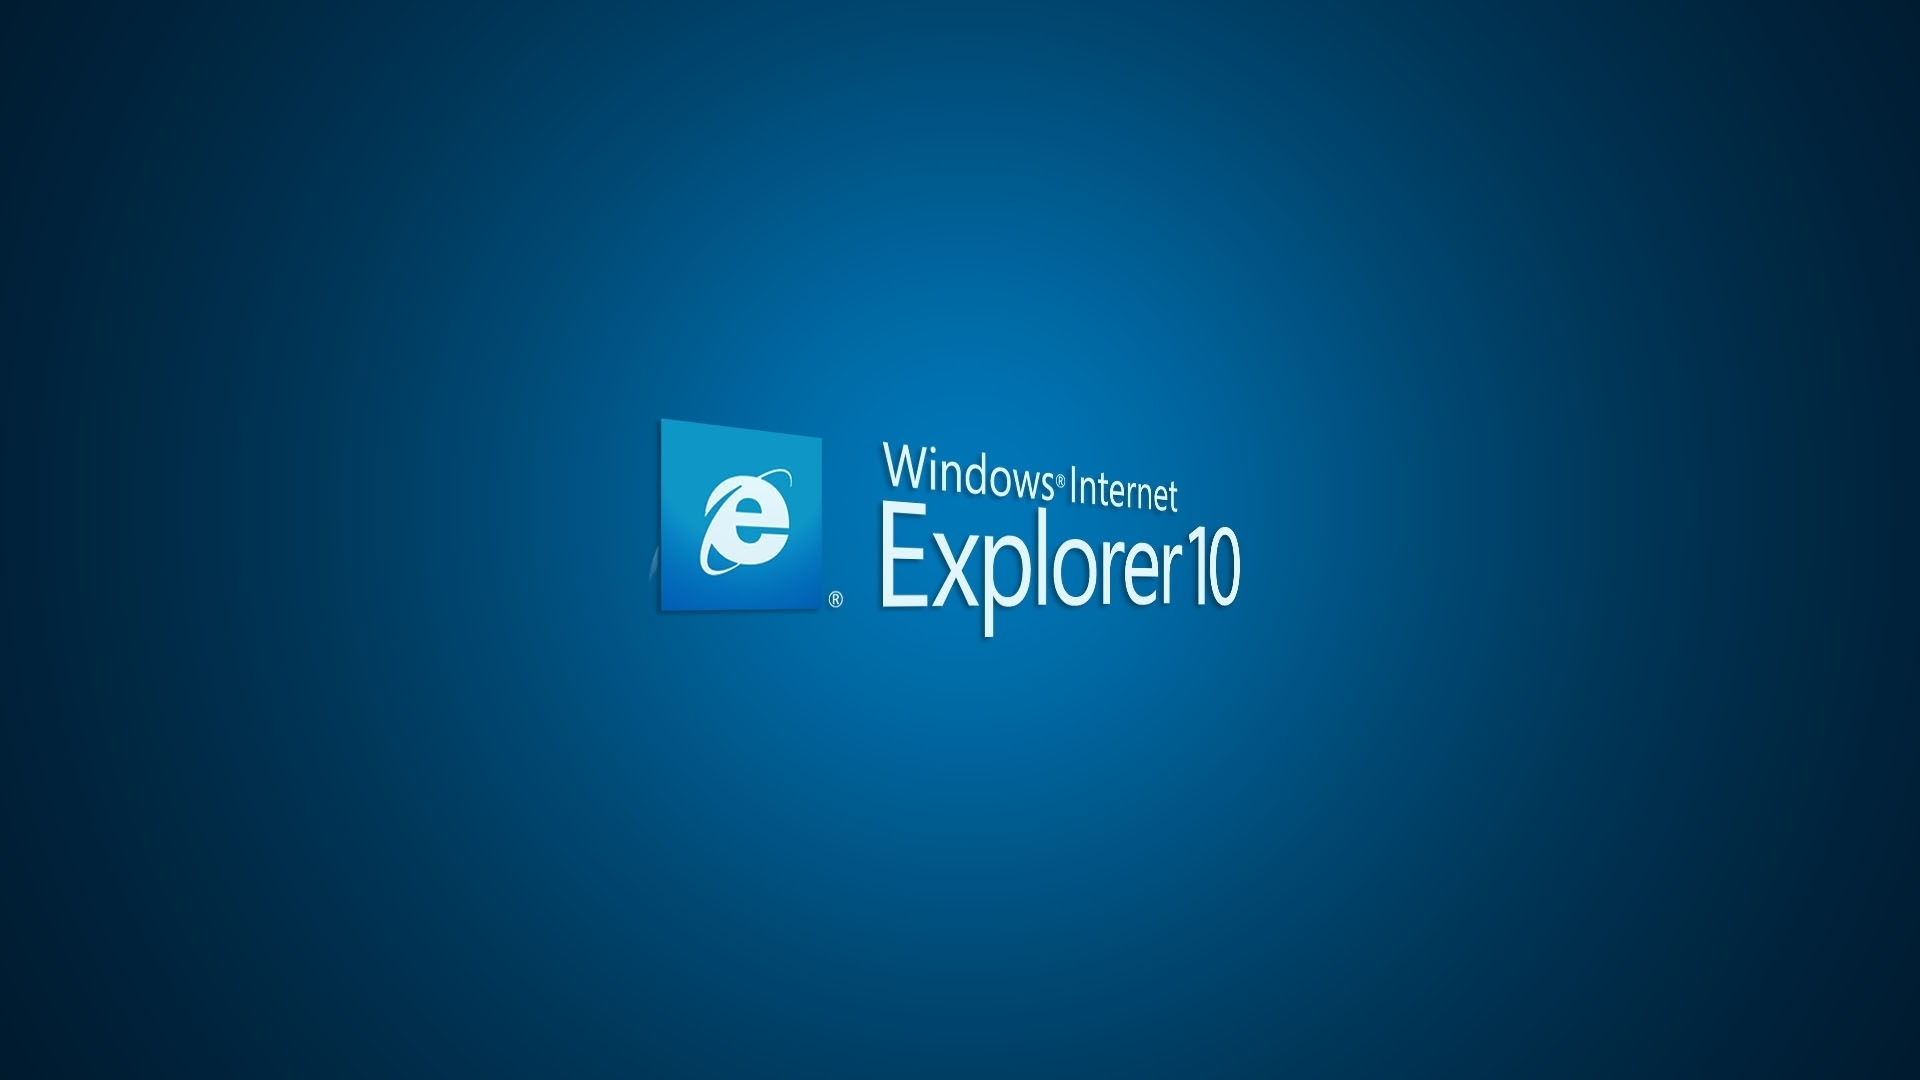 Microsoft Windows Internet Explorer 10